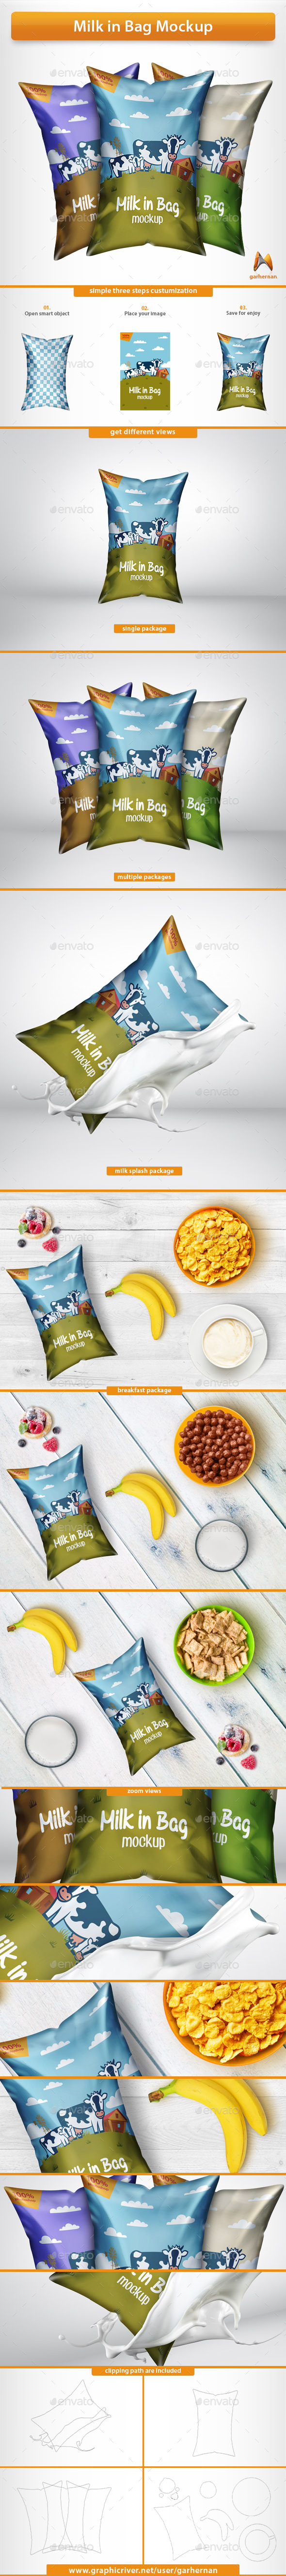 Milk in Bag Mockup - Food and Drink Packaging